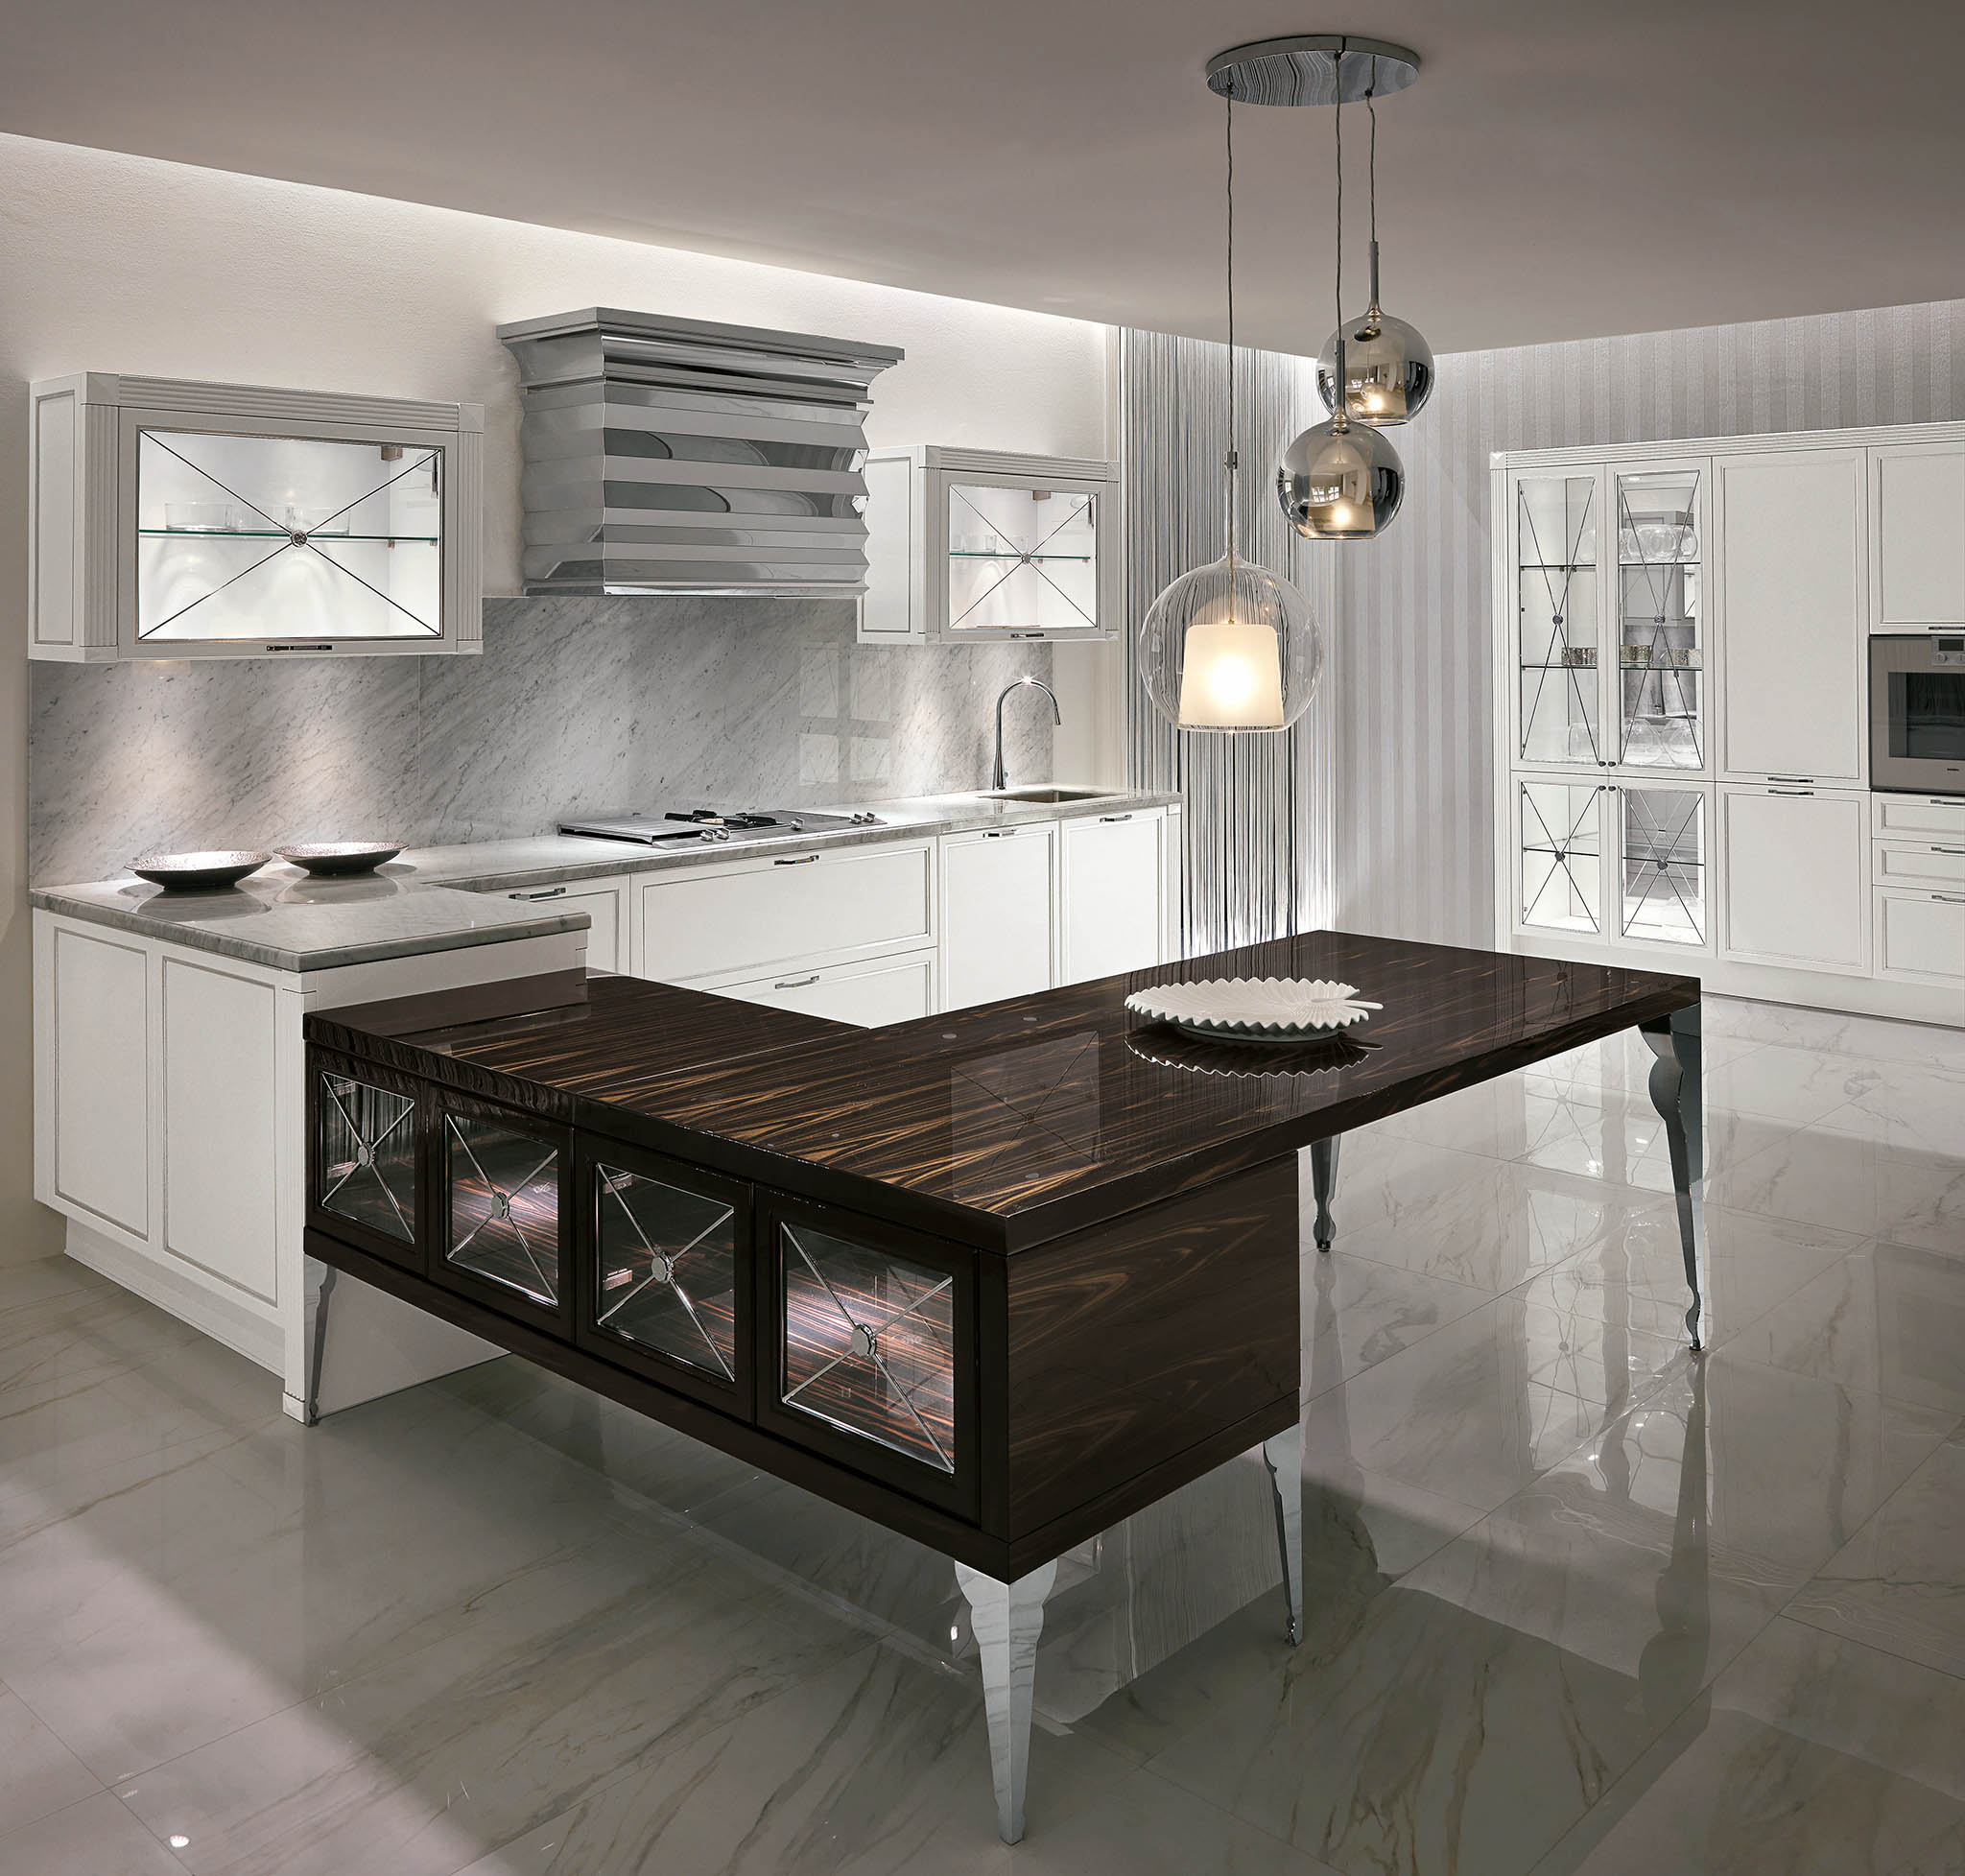 Кухня Luxury 04 Glam фабрика Aster cucine